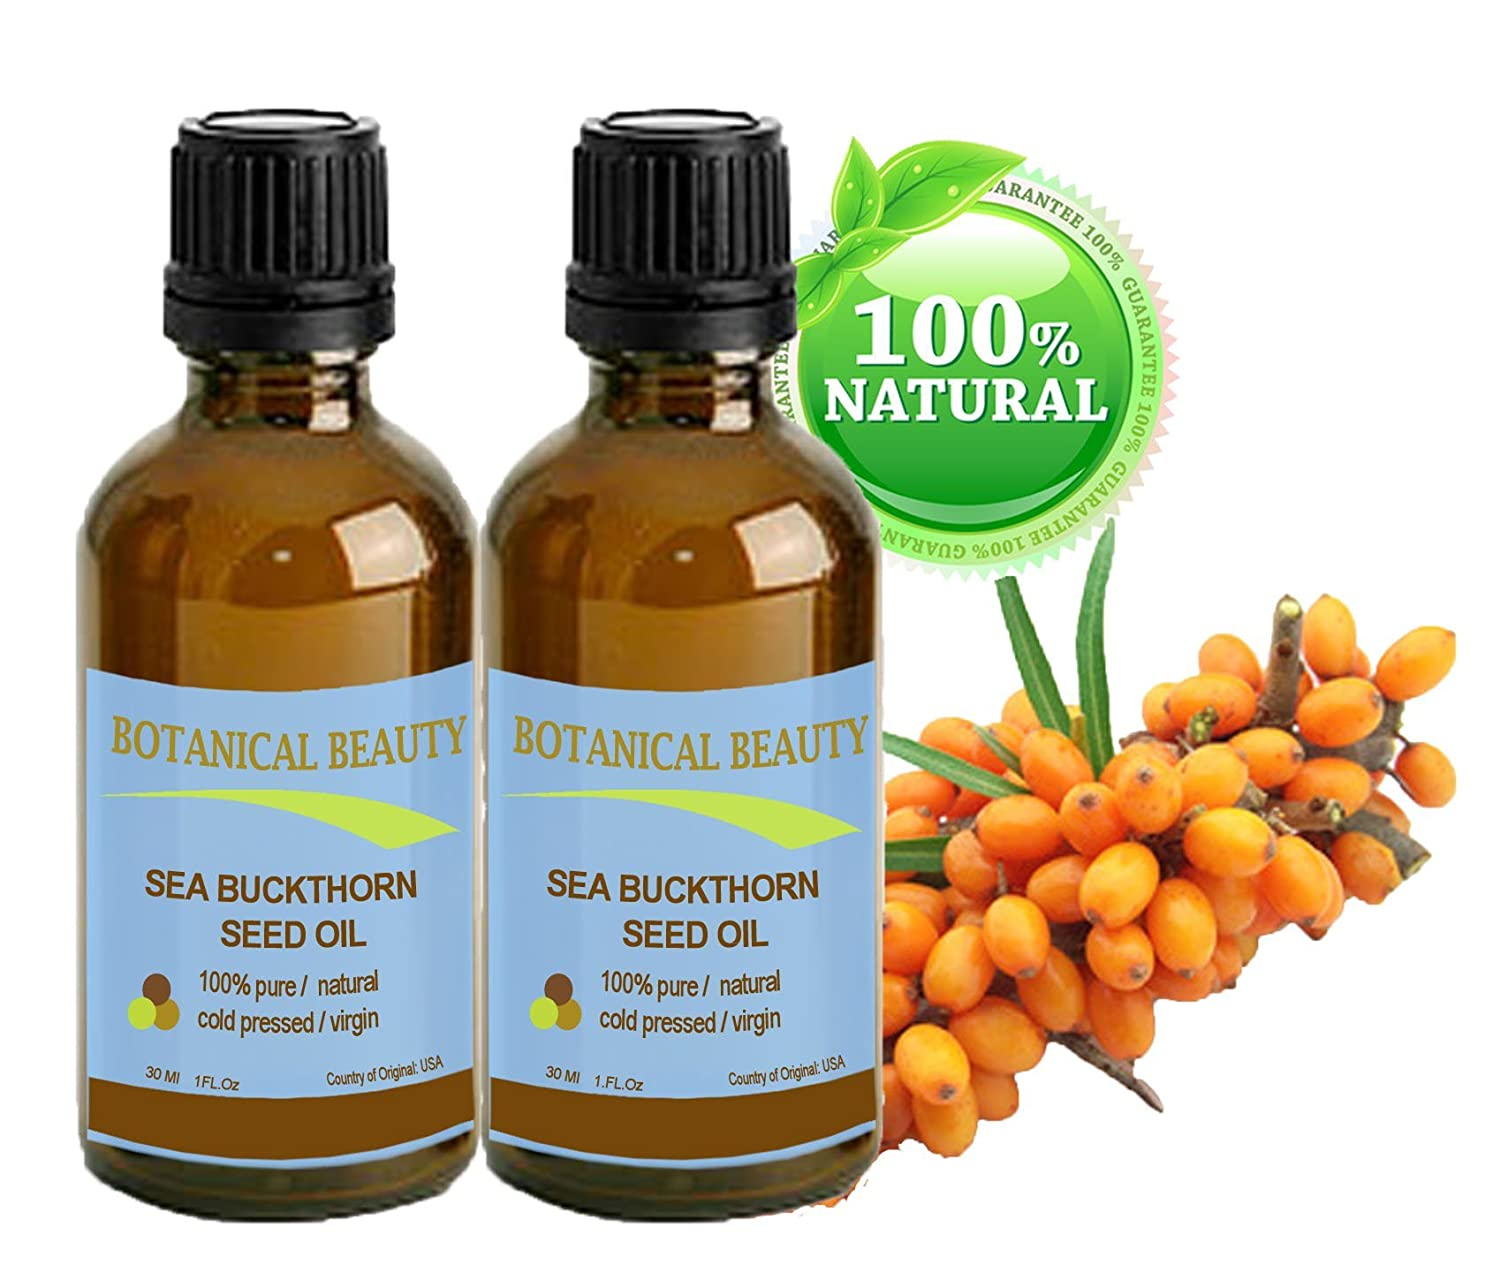 Botanical Beauty SEABUCKTHORN SEED OIL 100% Pure. Skin Care. Effectively reduces wrinkles, dryness and skin lines. 1 Fl.oz.- 30 ml. (pack-2)